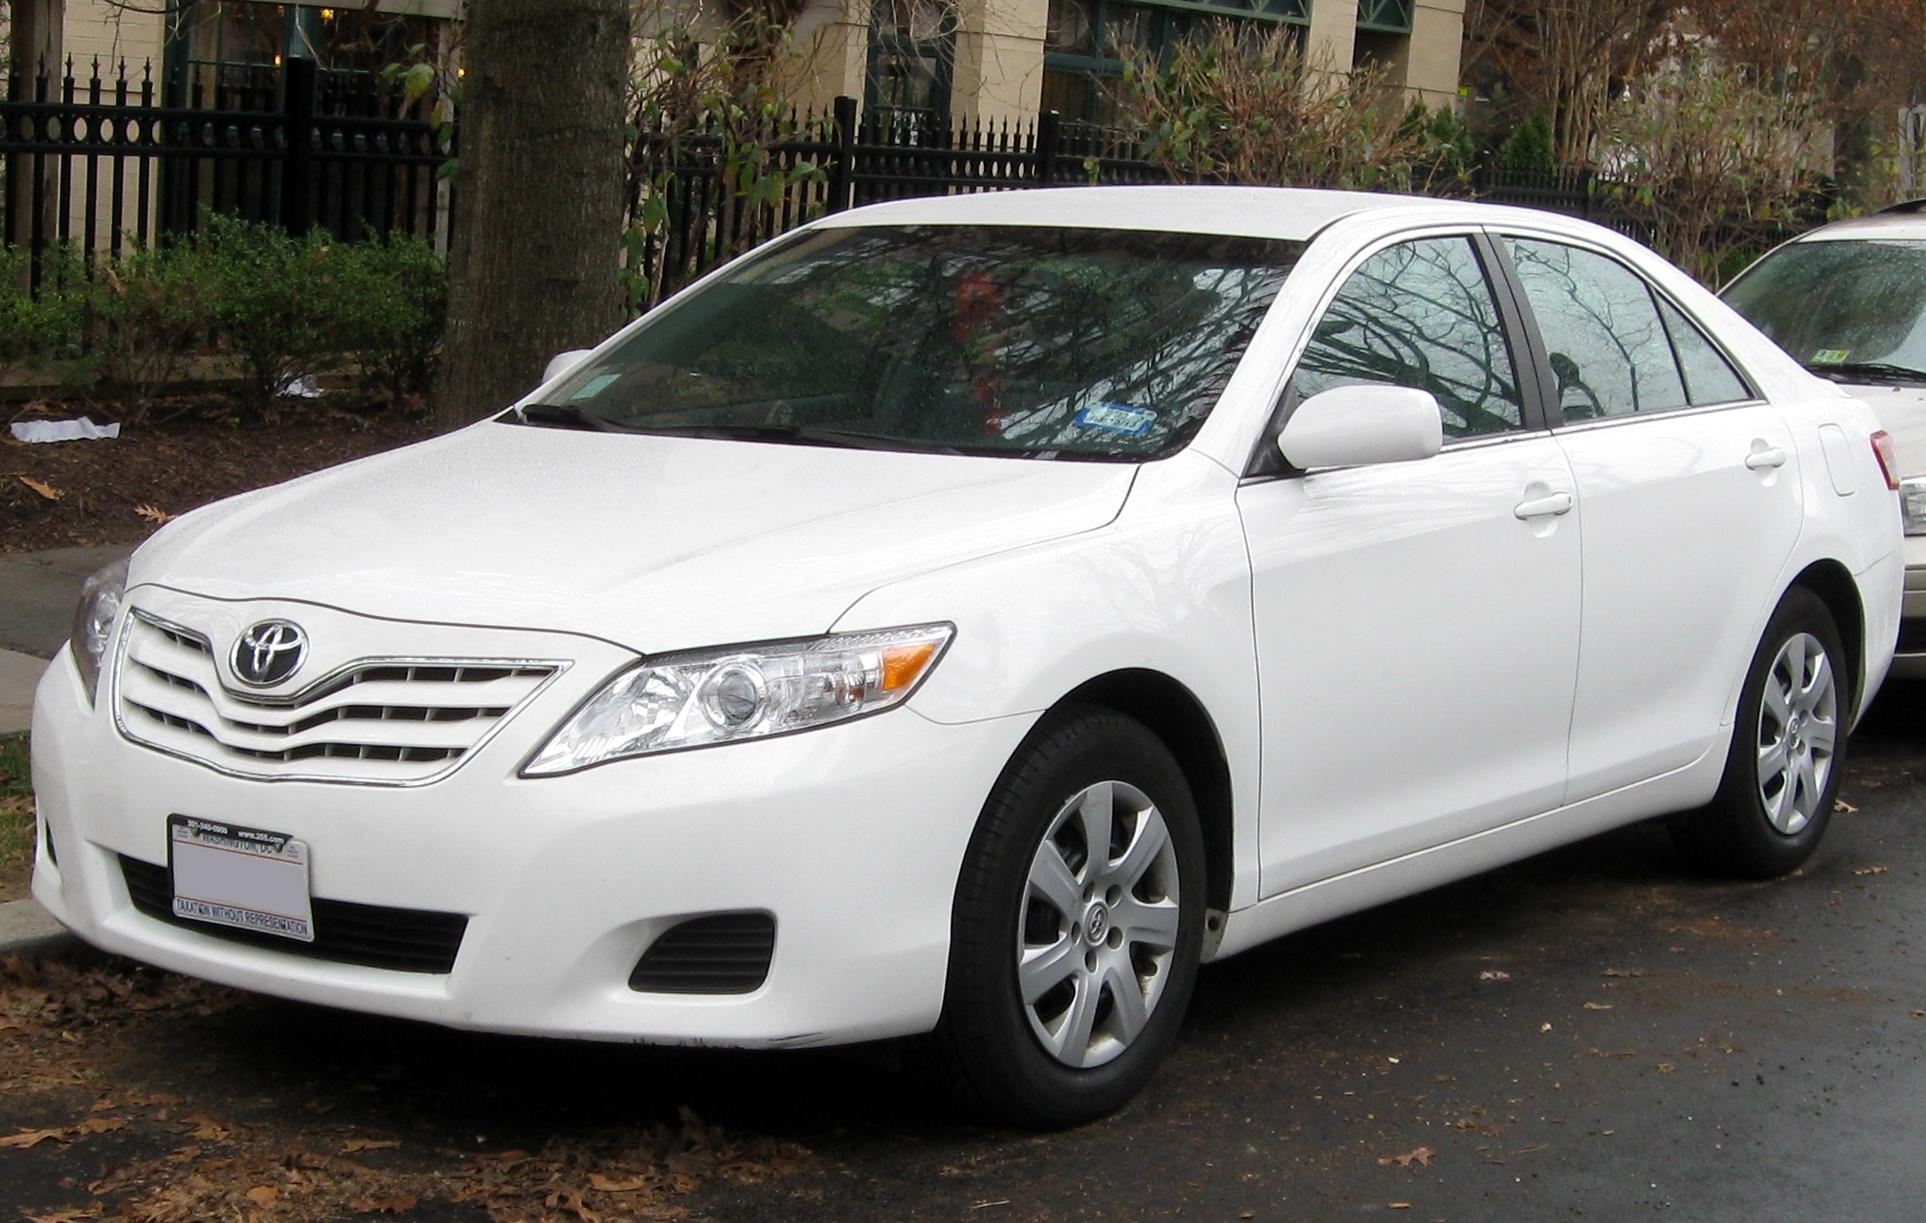 Toyota Camry Le 2011 2011 TOYOTA CAMRY - Image #14